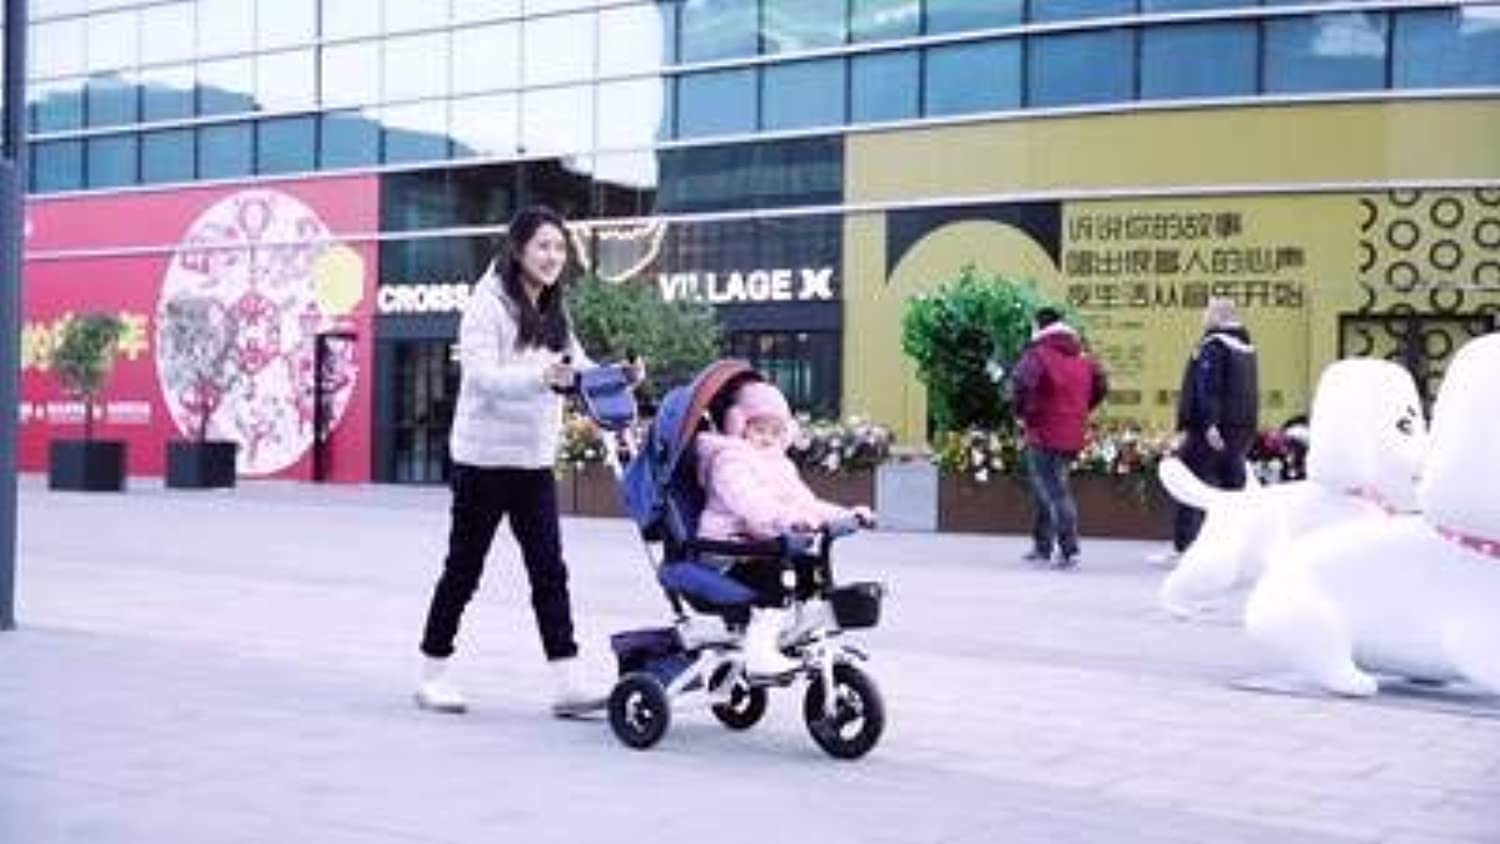 Artifact Slip Baby Tricycle Bicycle Baby Stroller Baby 147 Tuba Bike Stroller Quality Consumer Exposure